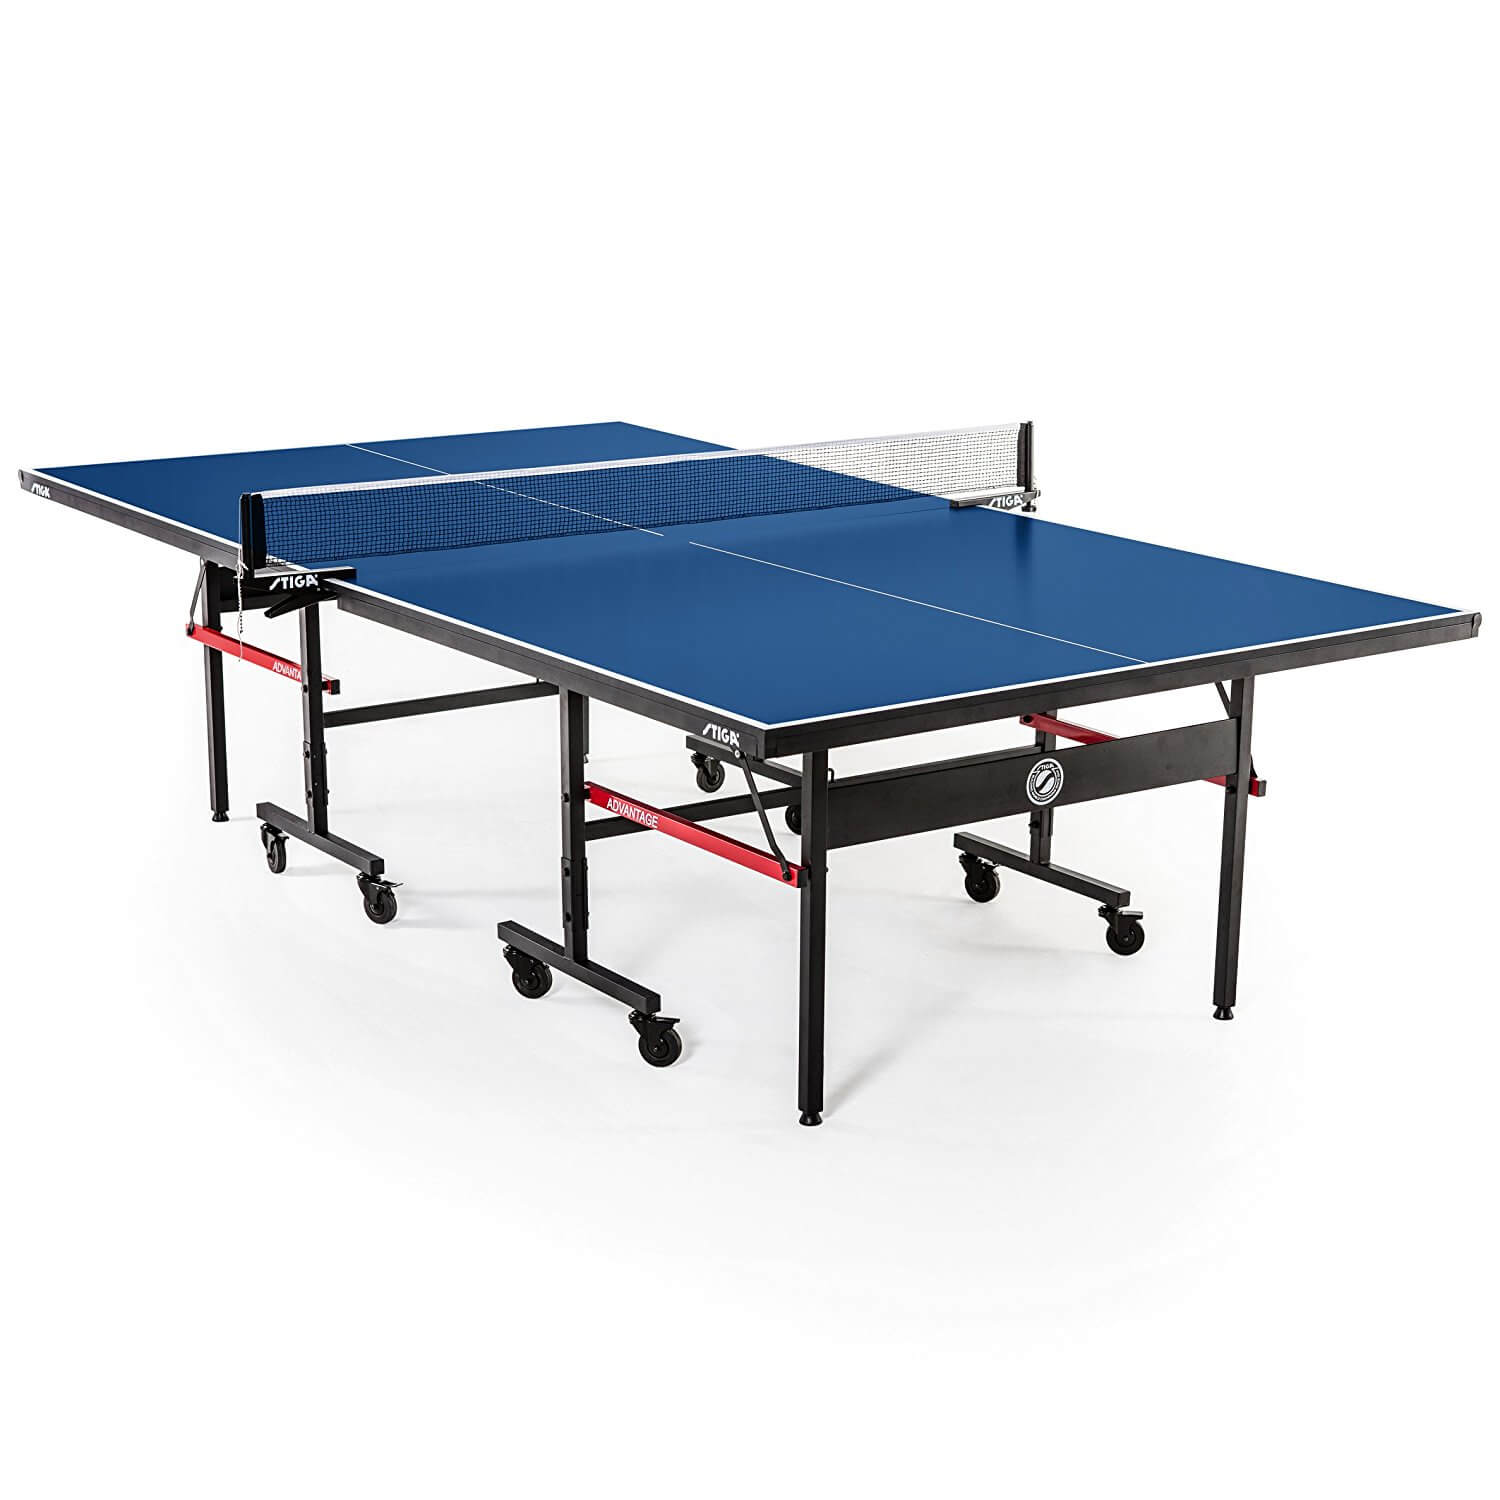 Best STIGA ping pong table